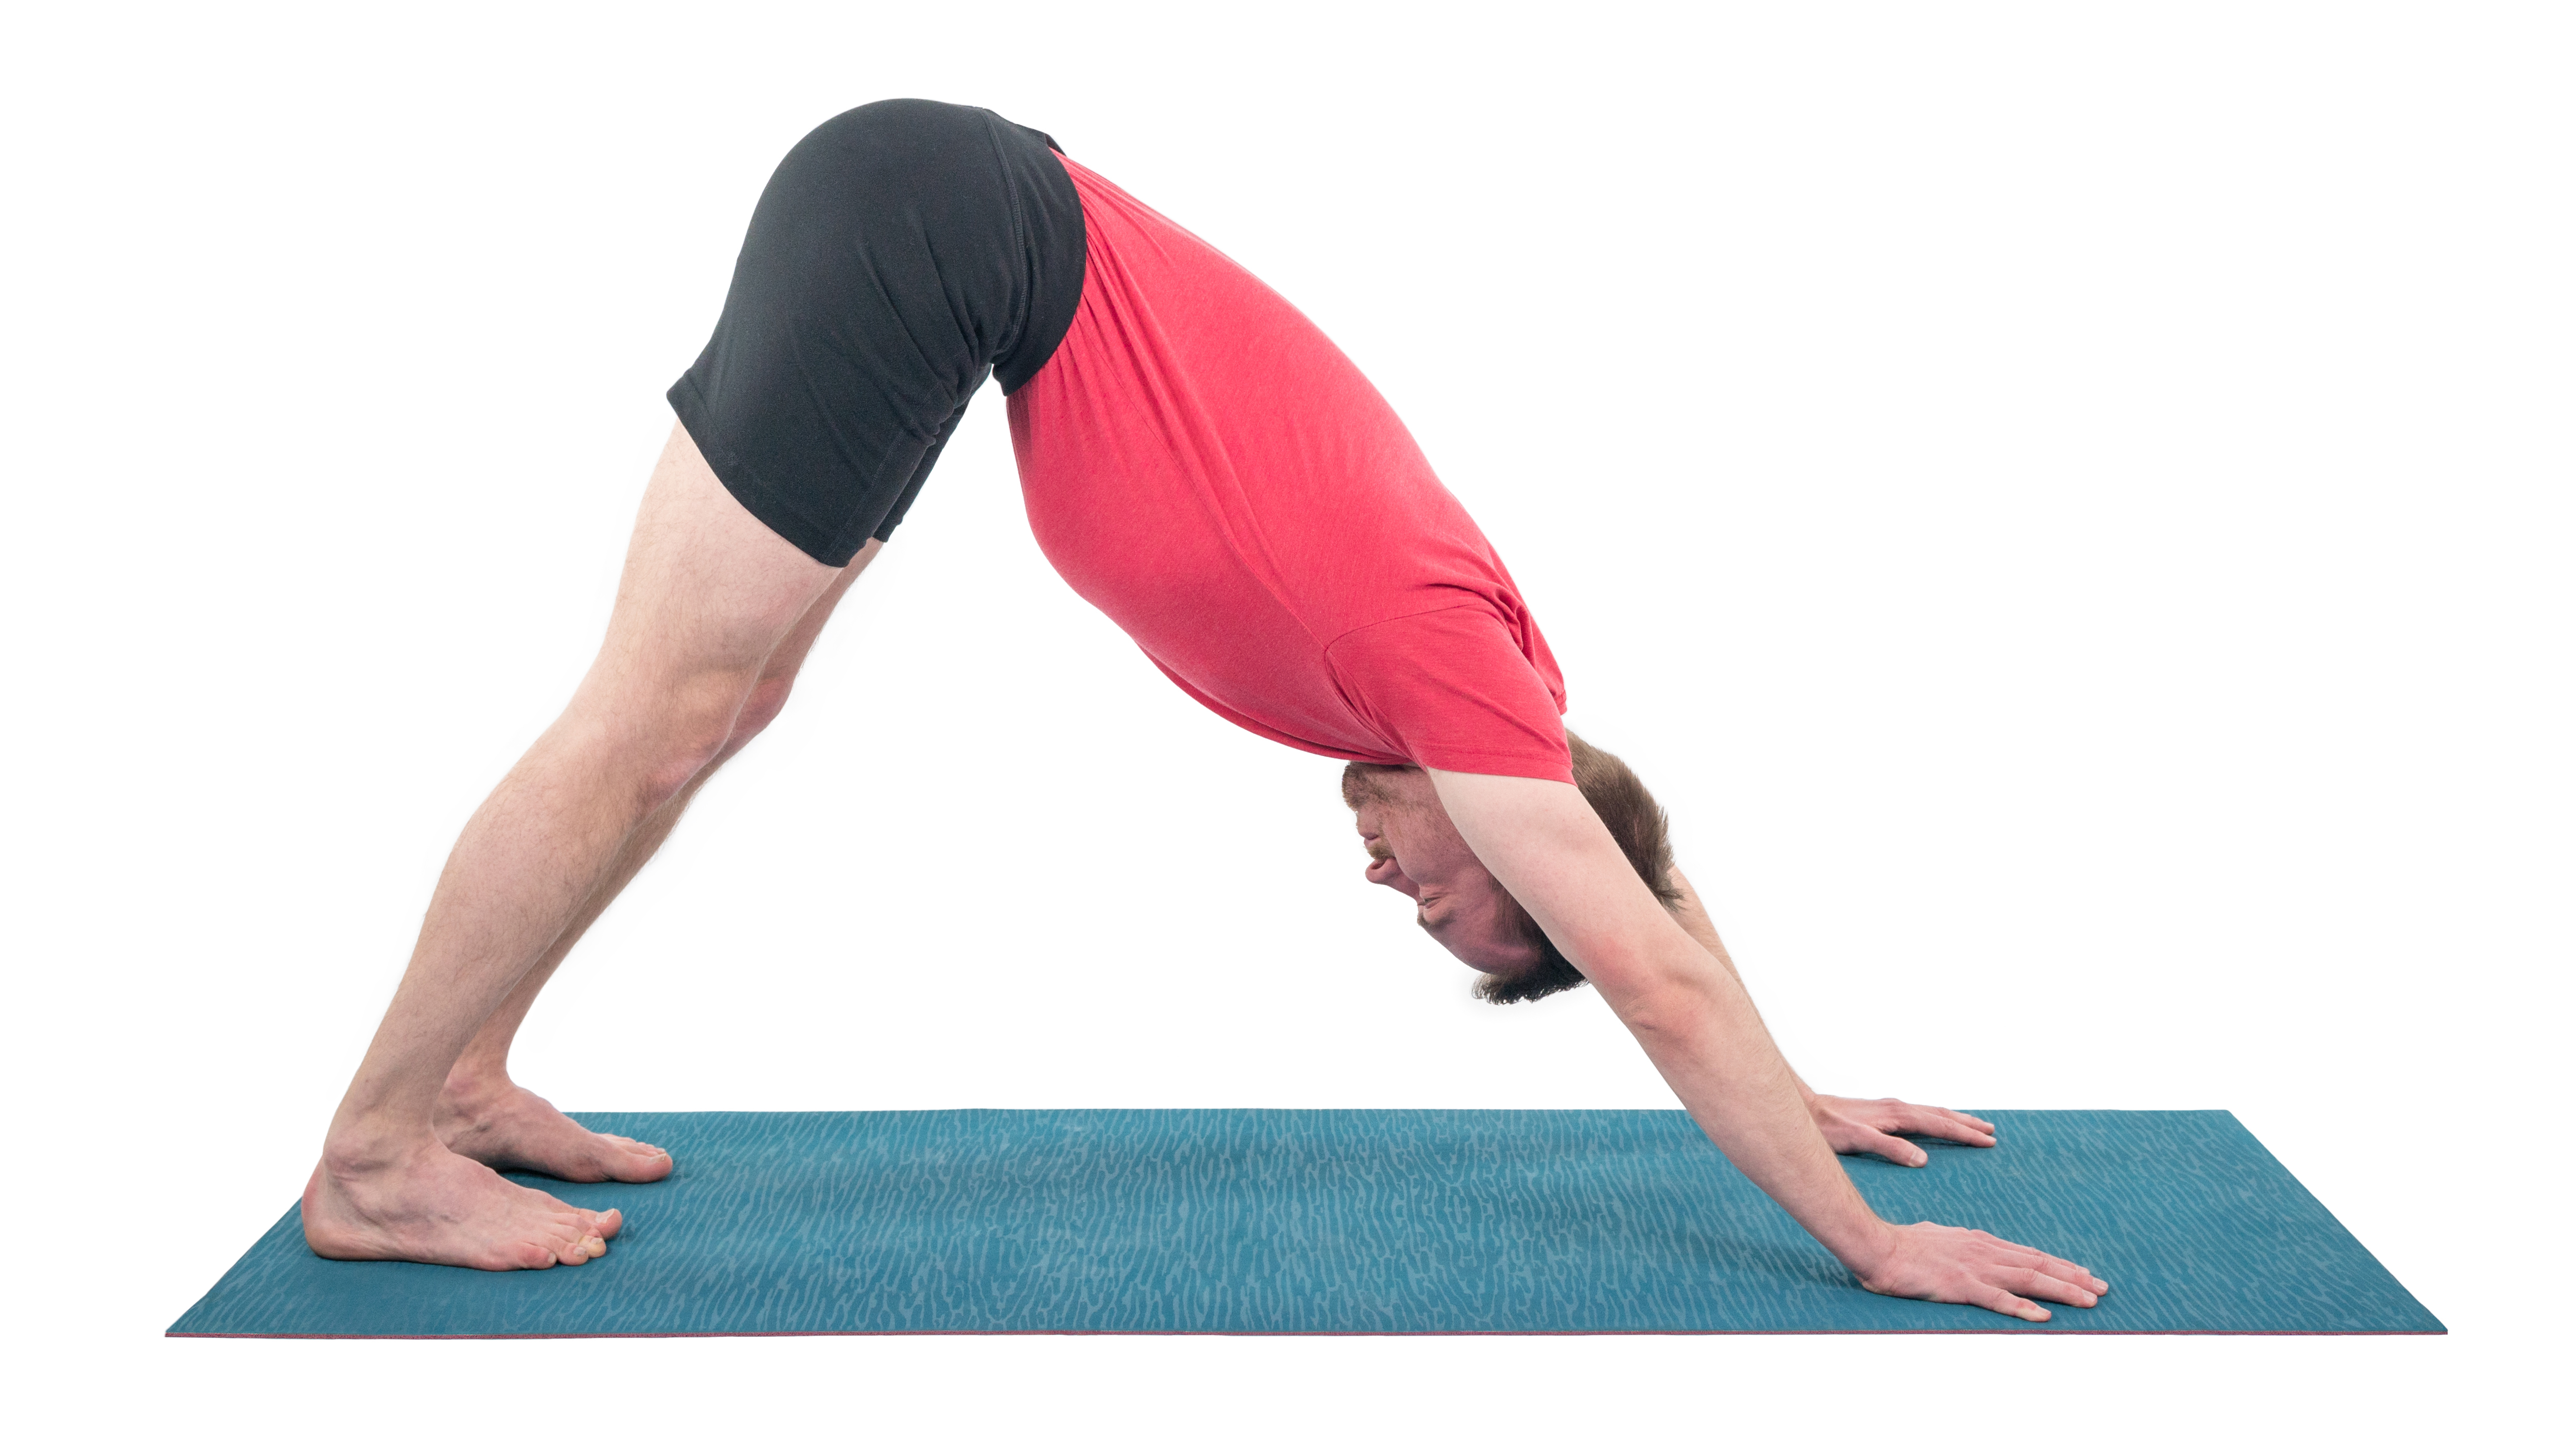 Adho Mukha Svanasana, downward facing dog, inversion pose, pose variations and flowing sequence for change